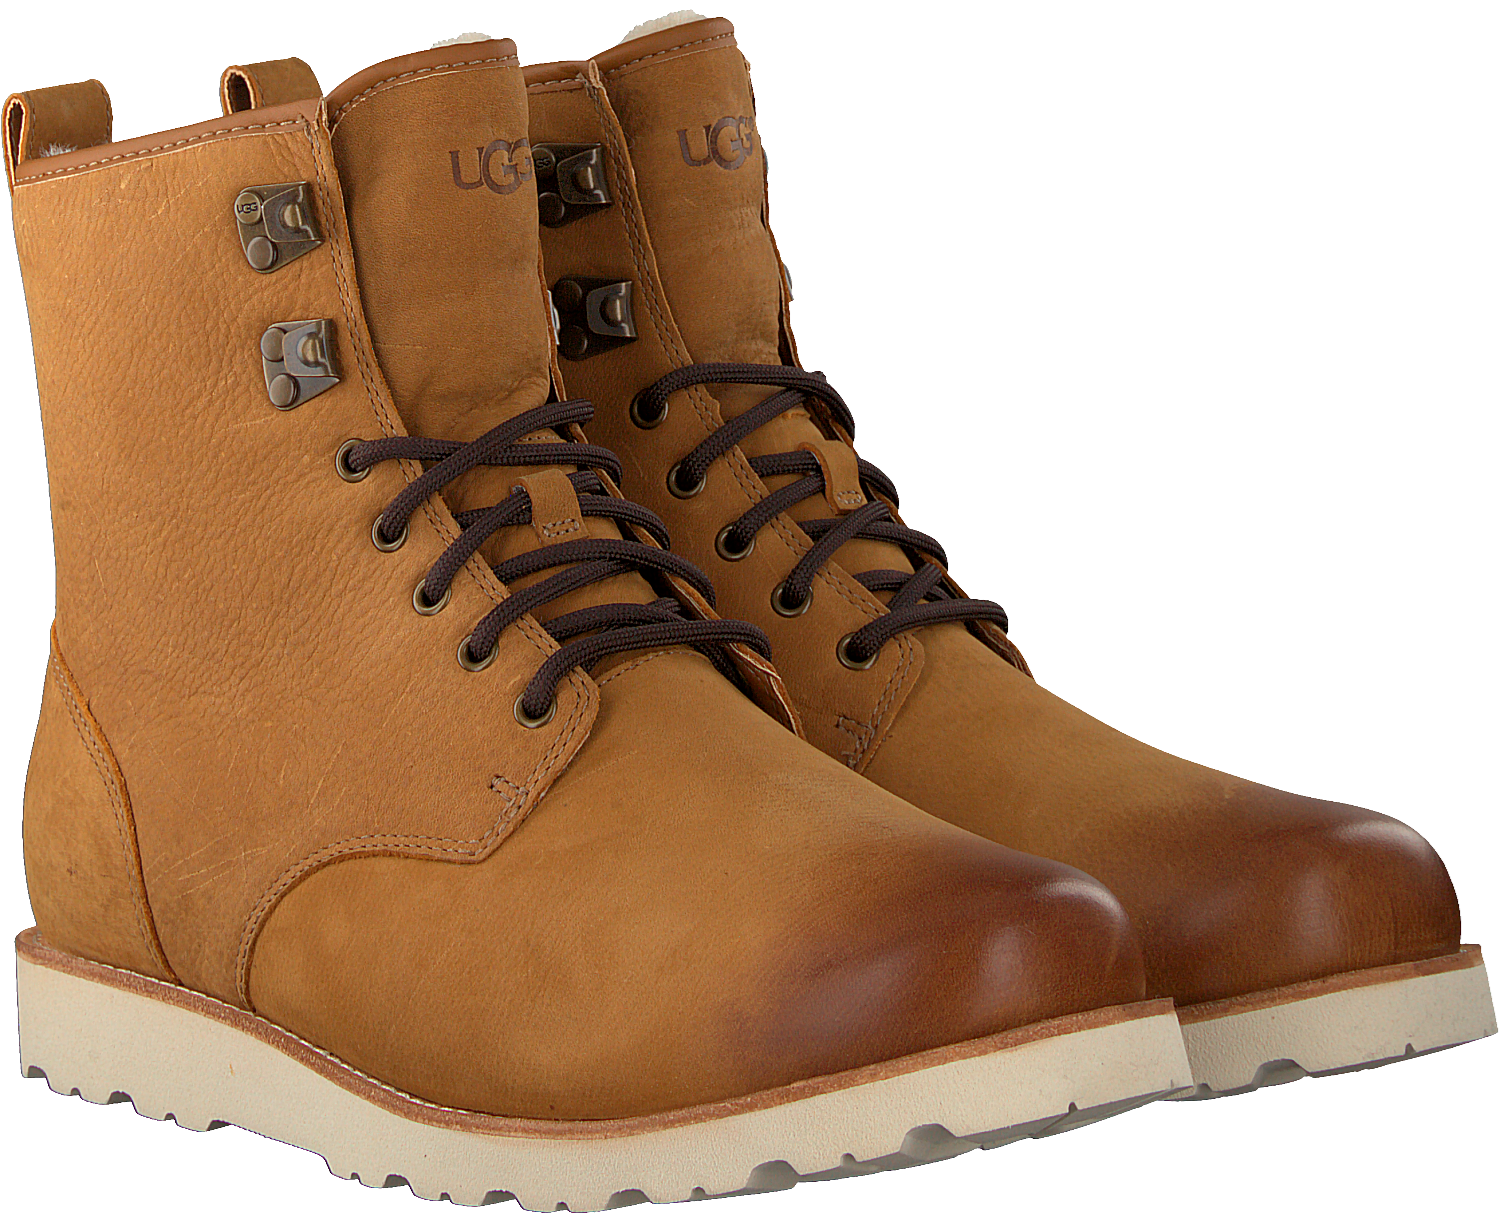 Hannen Ankle Camelfarbene Boots Ugg Tl SUMpVqzG